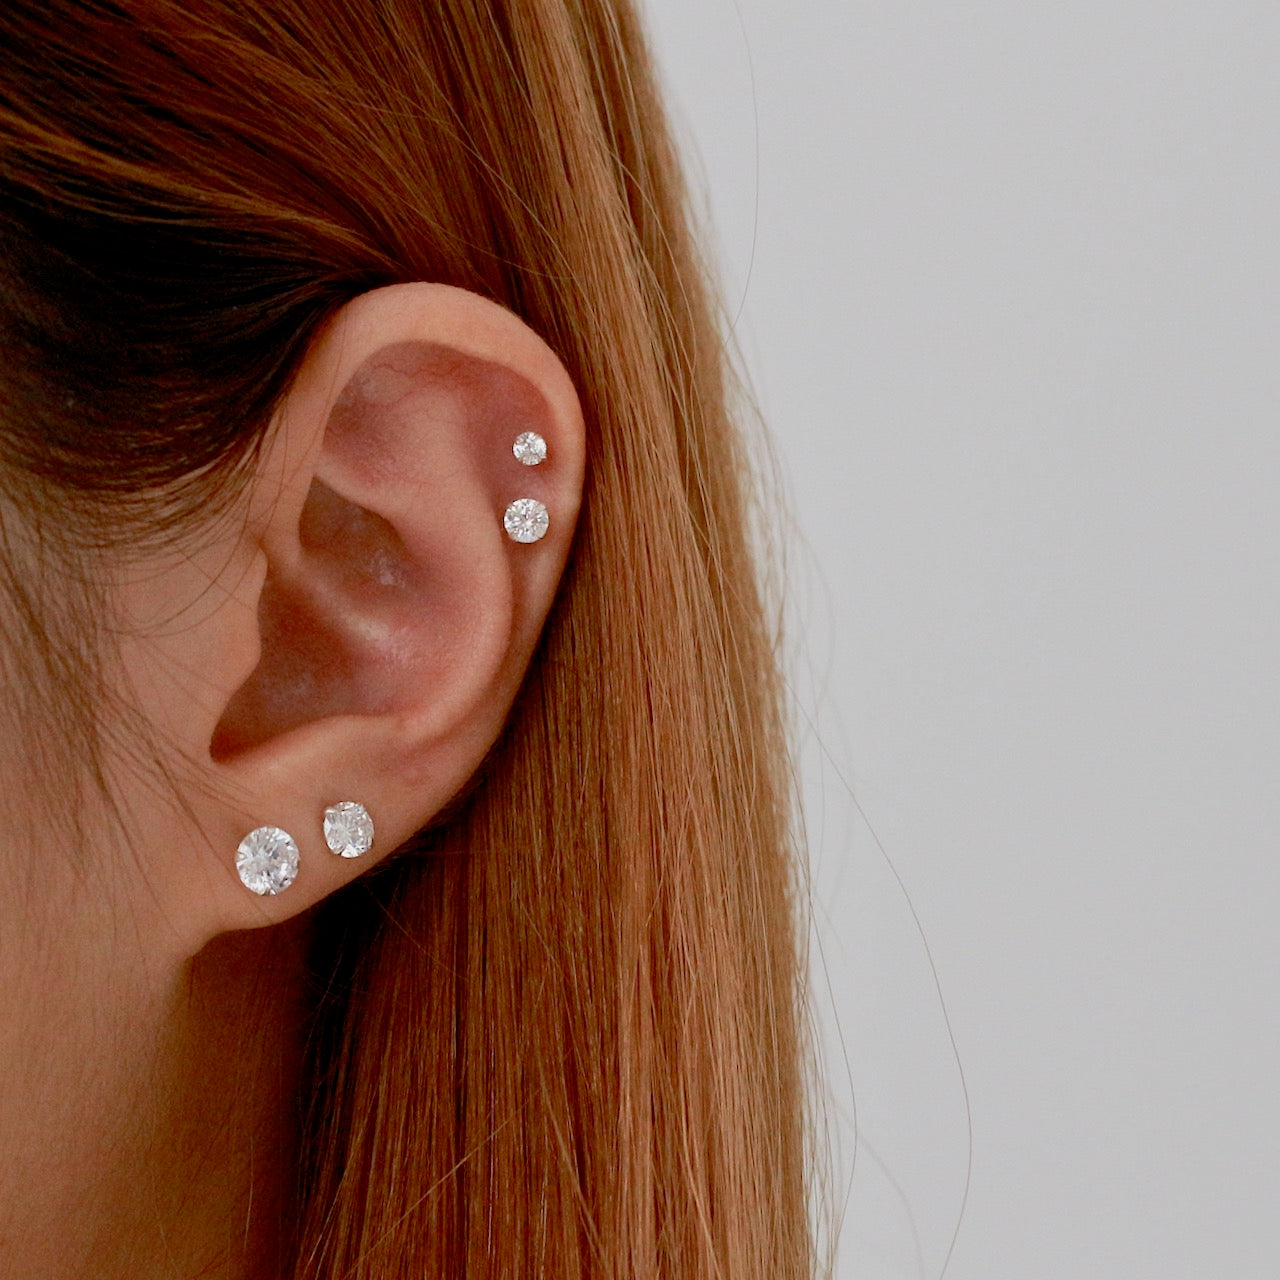 Sparkly Stud Earrings 5mm